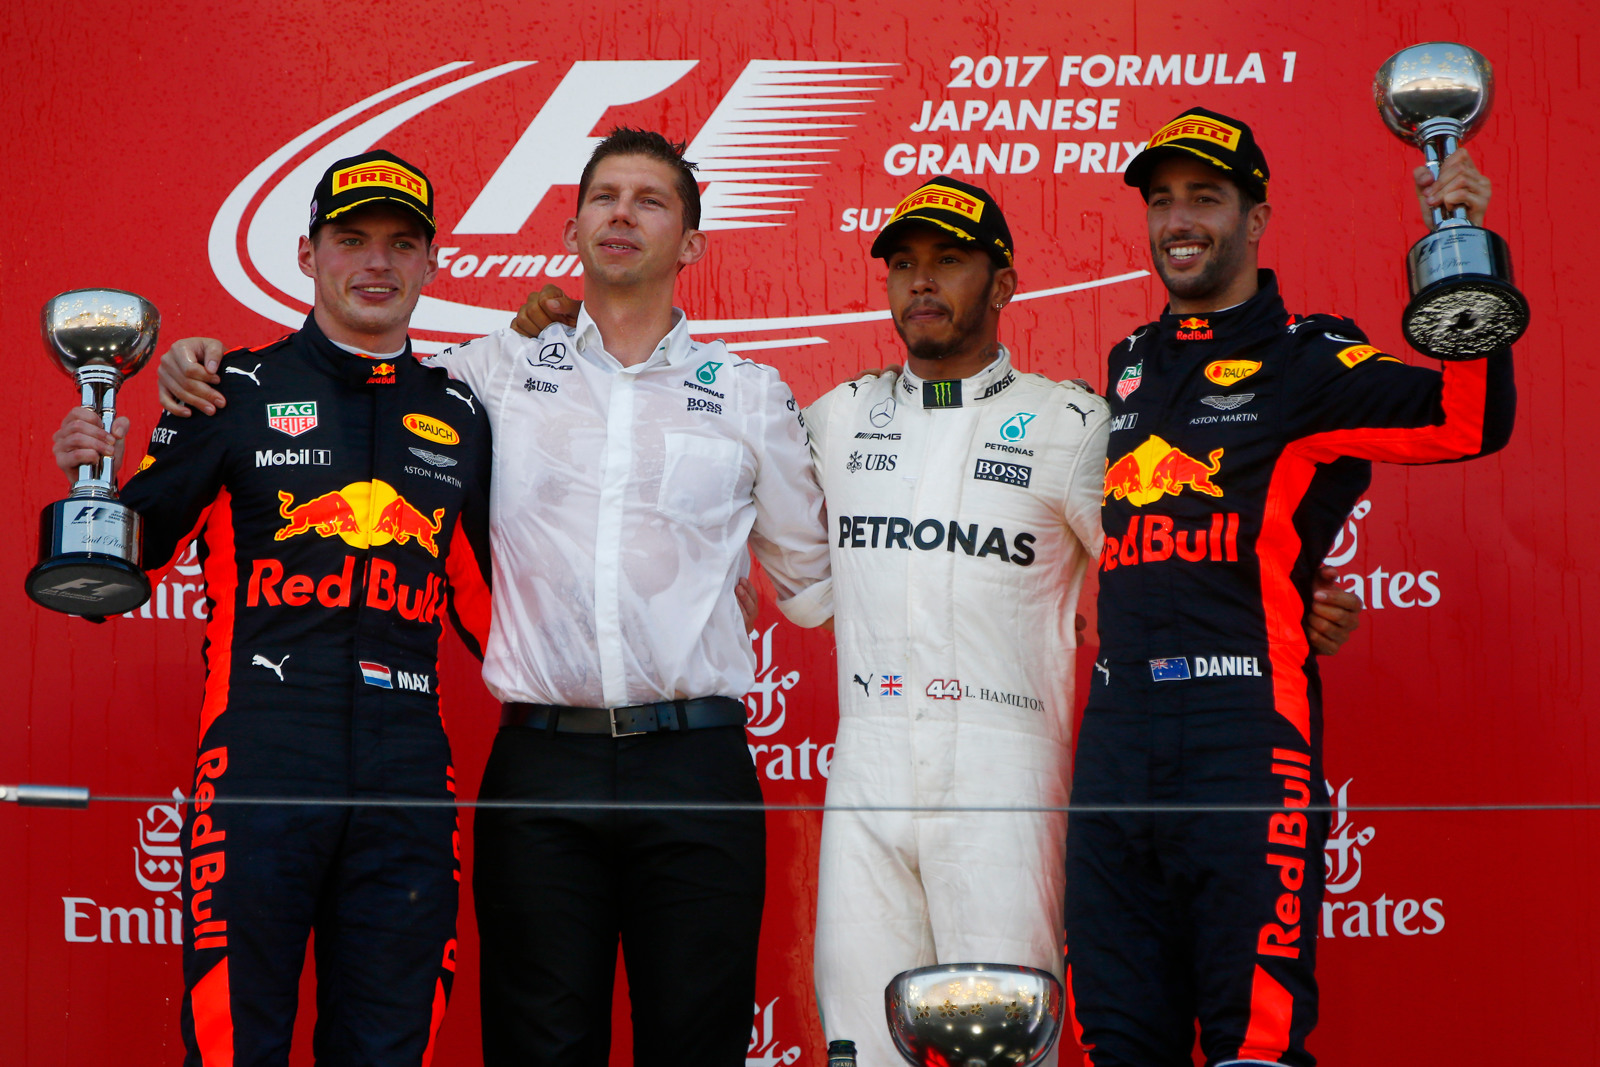 Suzuka Circuit, Japan. Sunday 08 October 2017. Winner Lewis Hamilton, Mercedes AMG, celebrates on the podium with James Vowles, Strategist, Mercedes AMG, Max Verstappen, Red Bull Racing, and Daniel Ricciardo, Red Bull Racing. World Copyright: Andy Hone/LAT Images ref: Digital Image _ONY8849